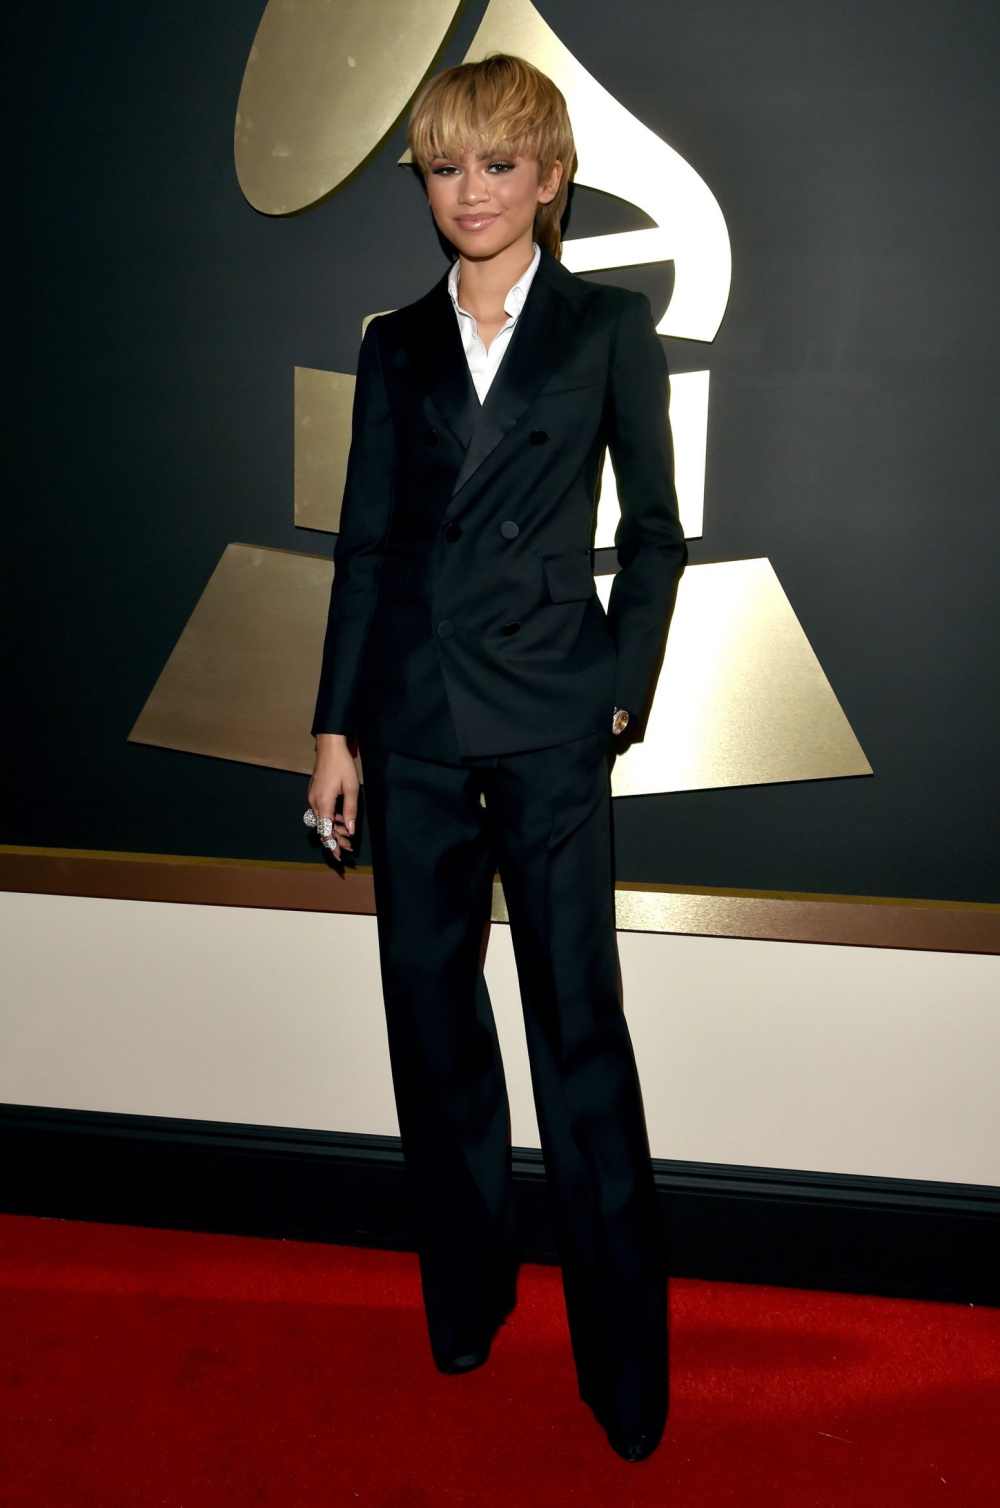 Zendaya Grammys 2016 Best Dressed Celebrities